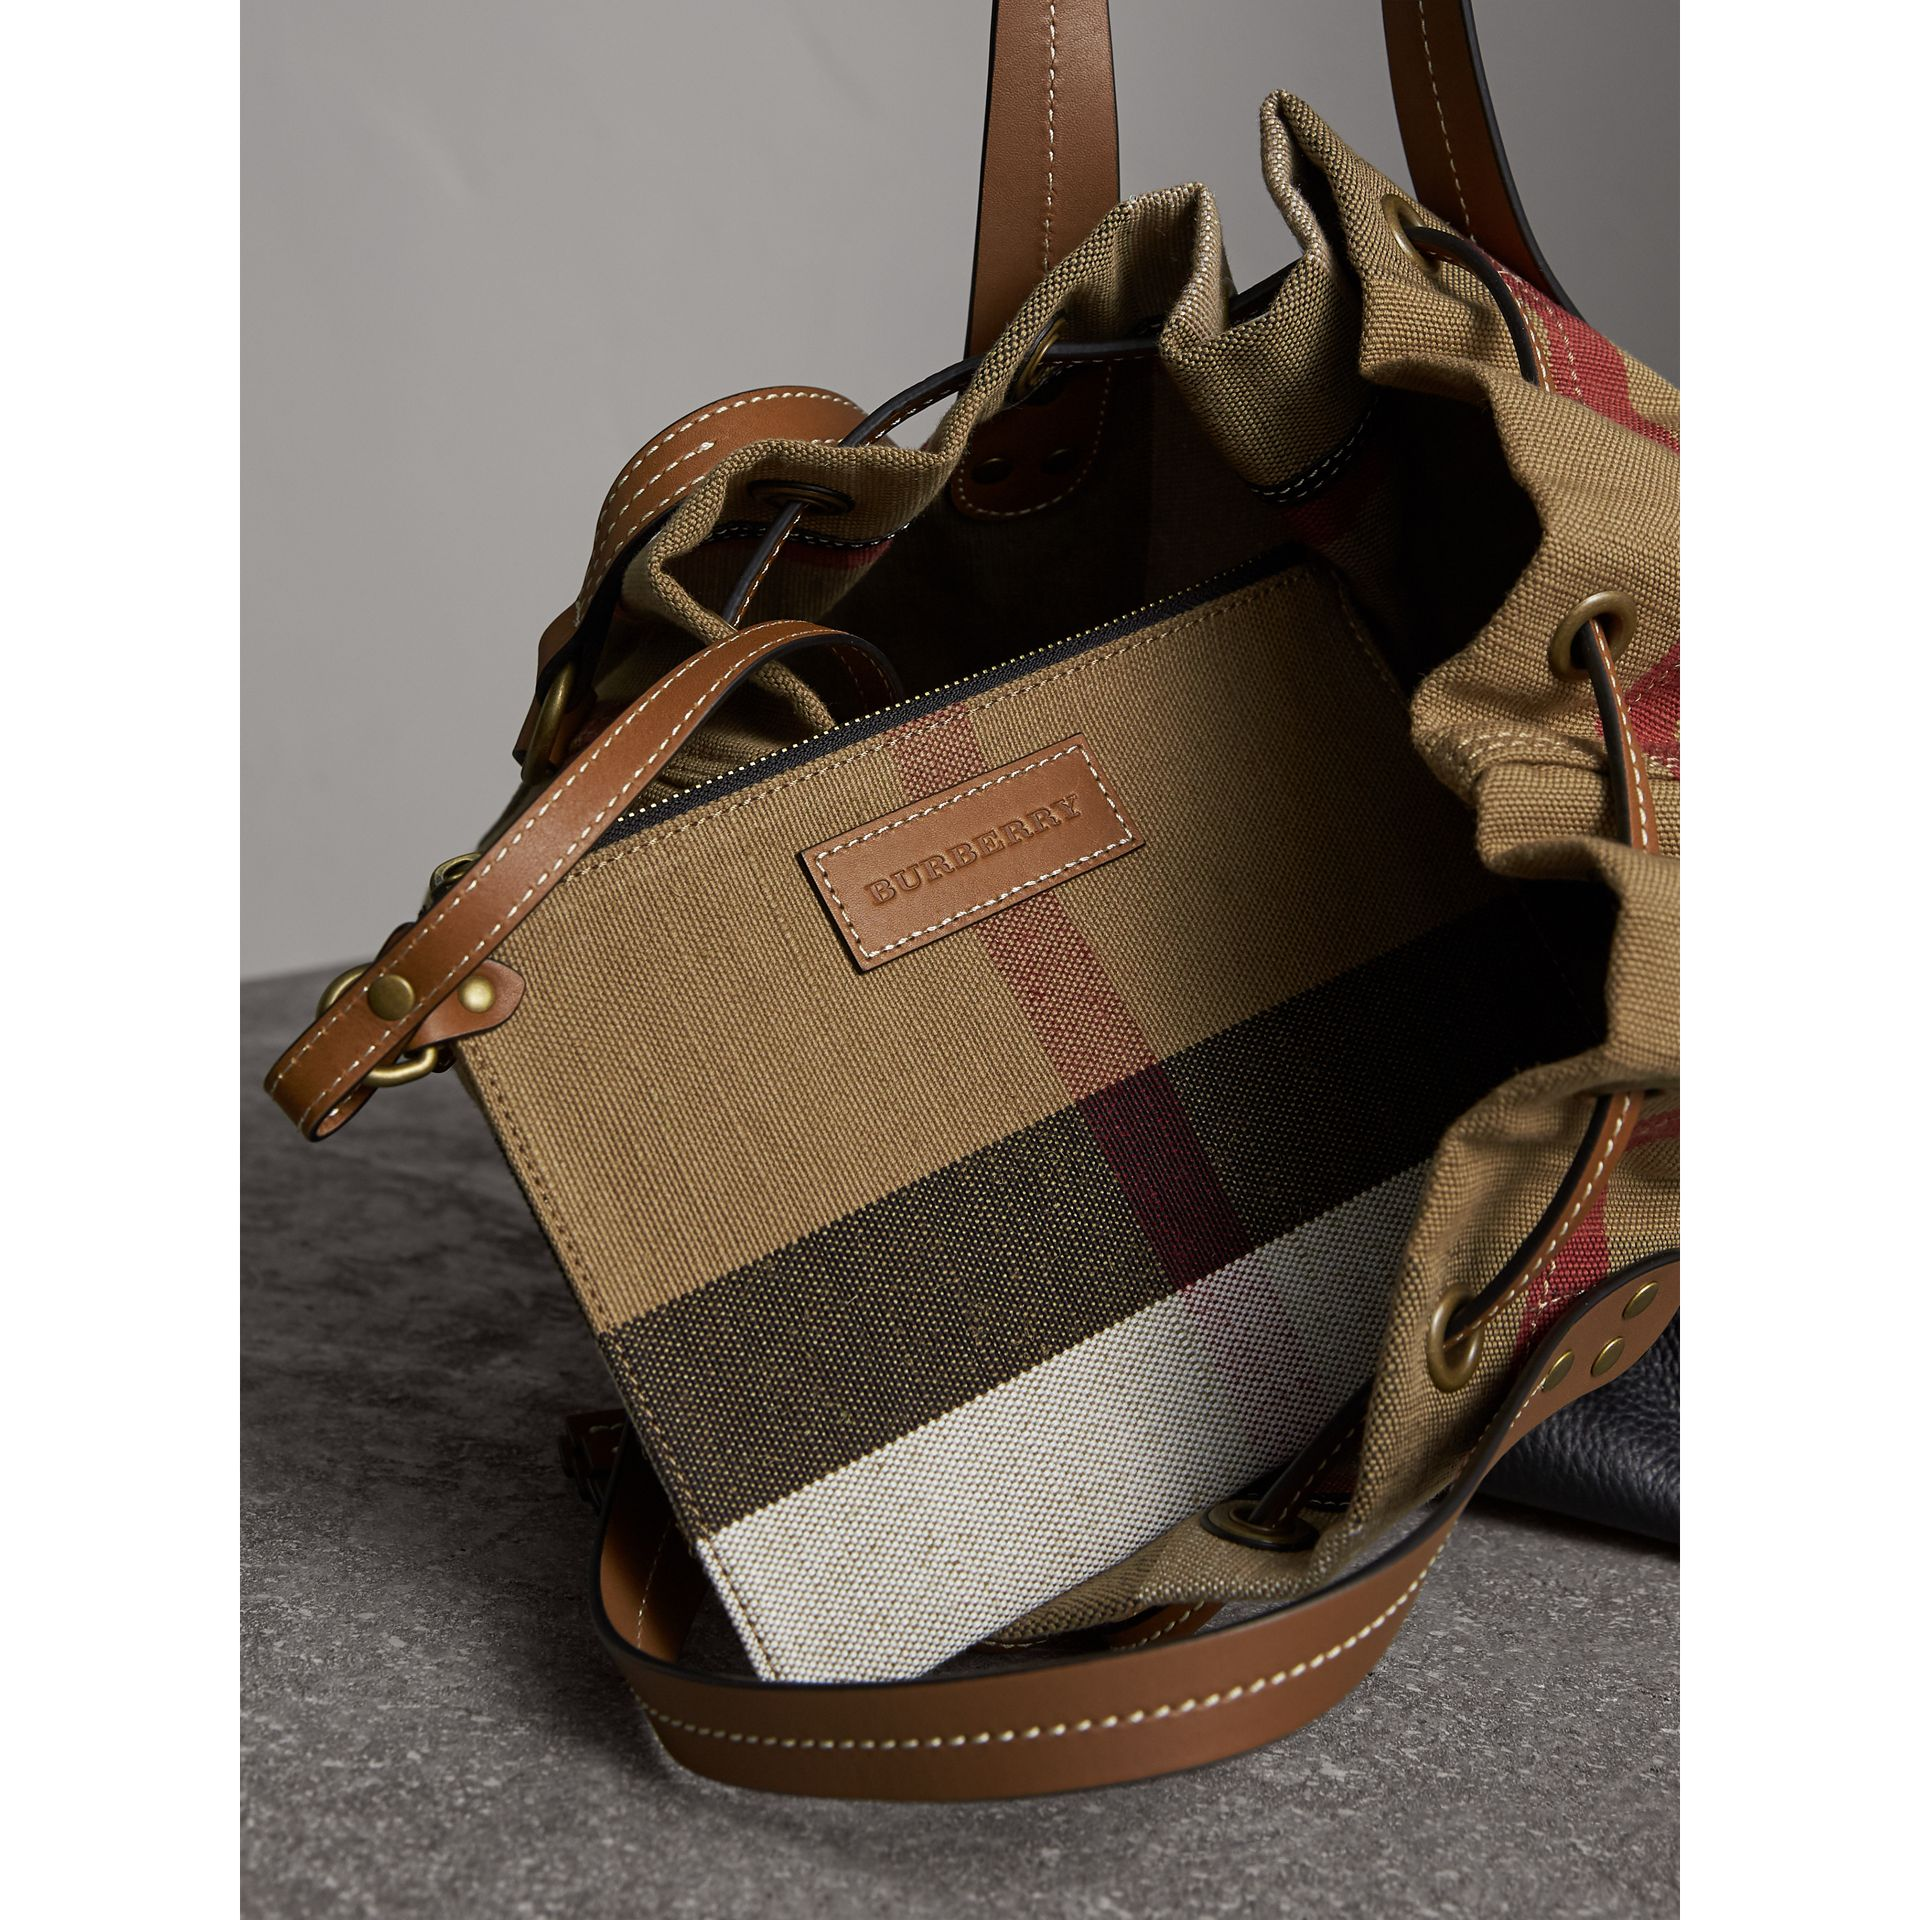 Medium Canvas Check Bucket Bag in Tan - Women | Burberry Hong Kong - gallery image 5